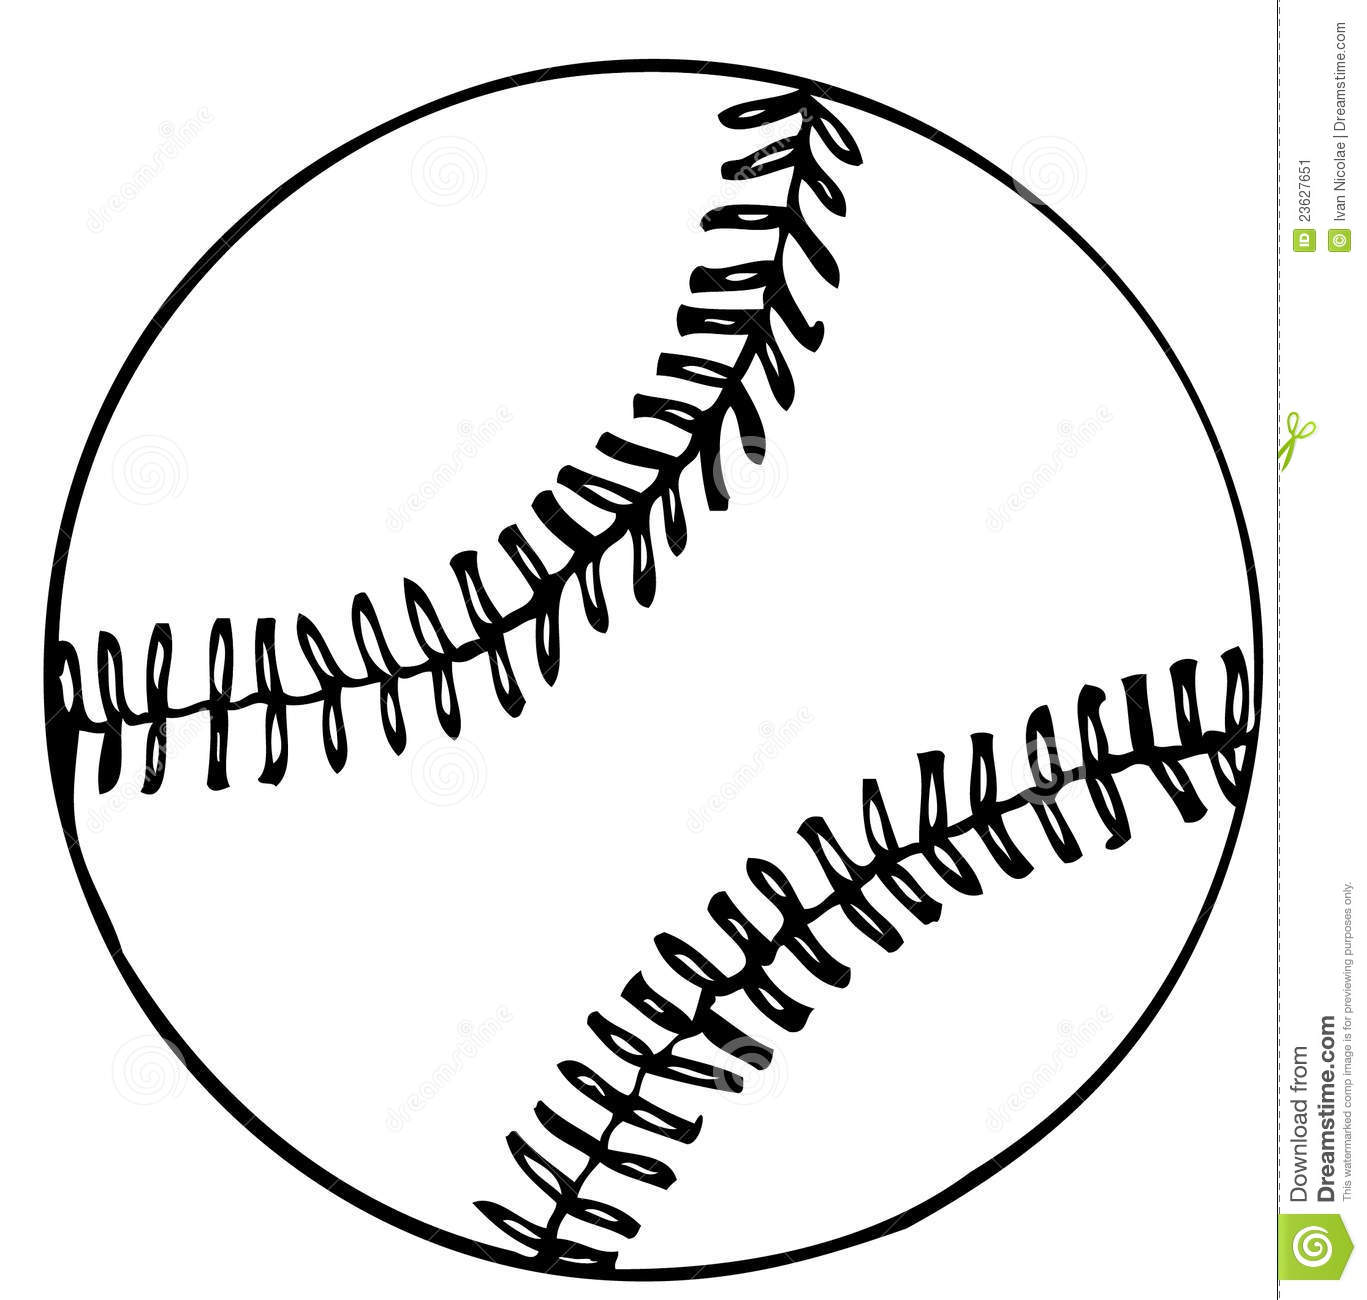 New Vector Baseball Stock Image - Image: 23627651